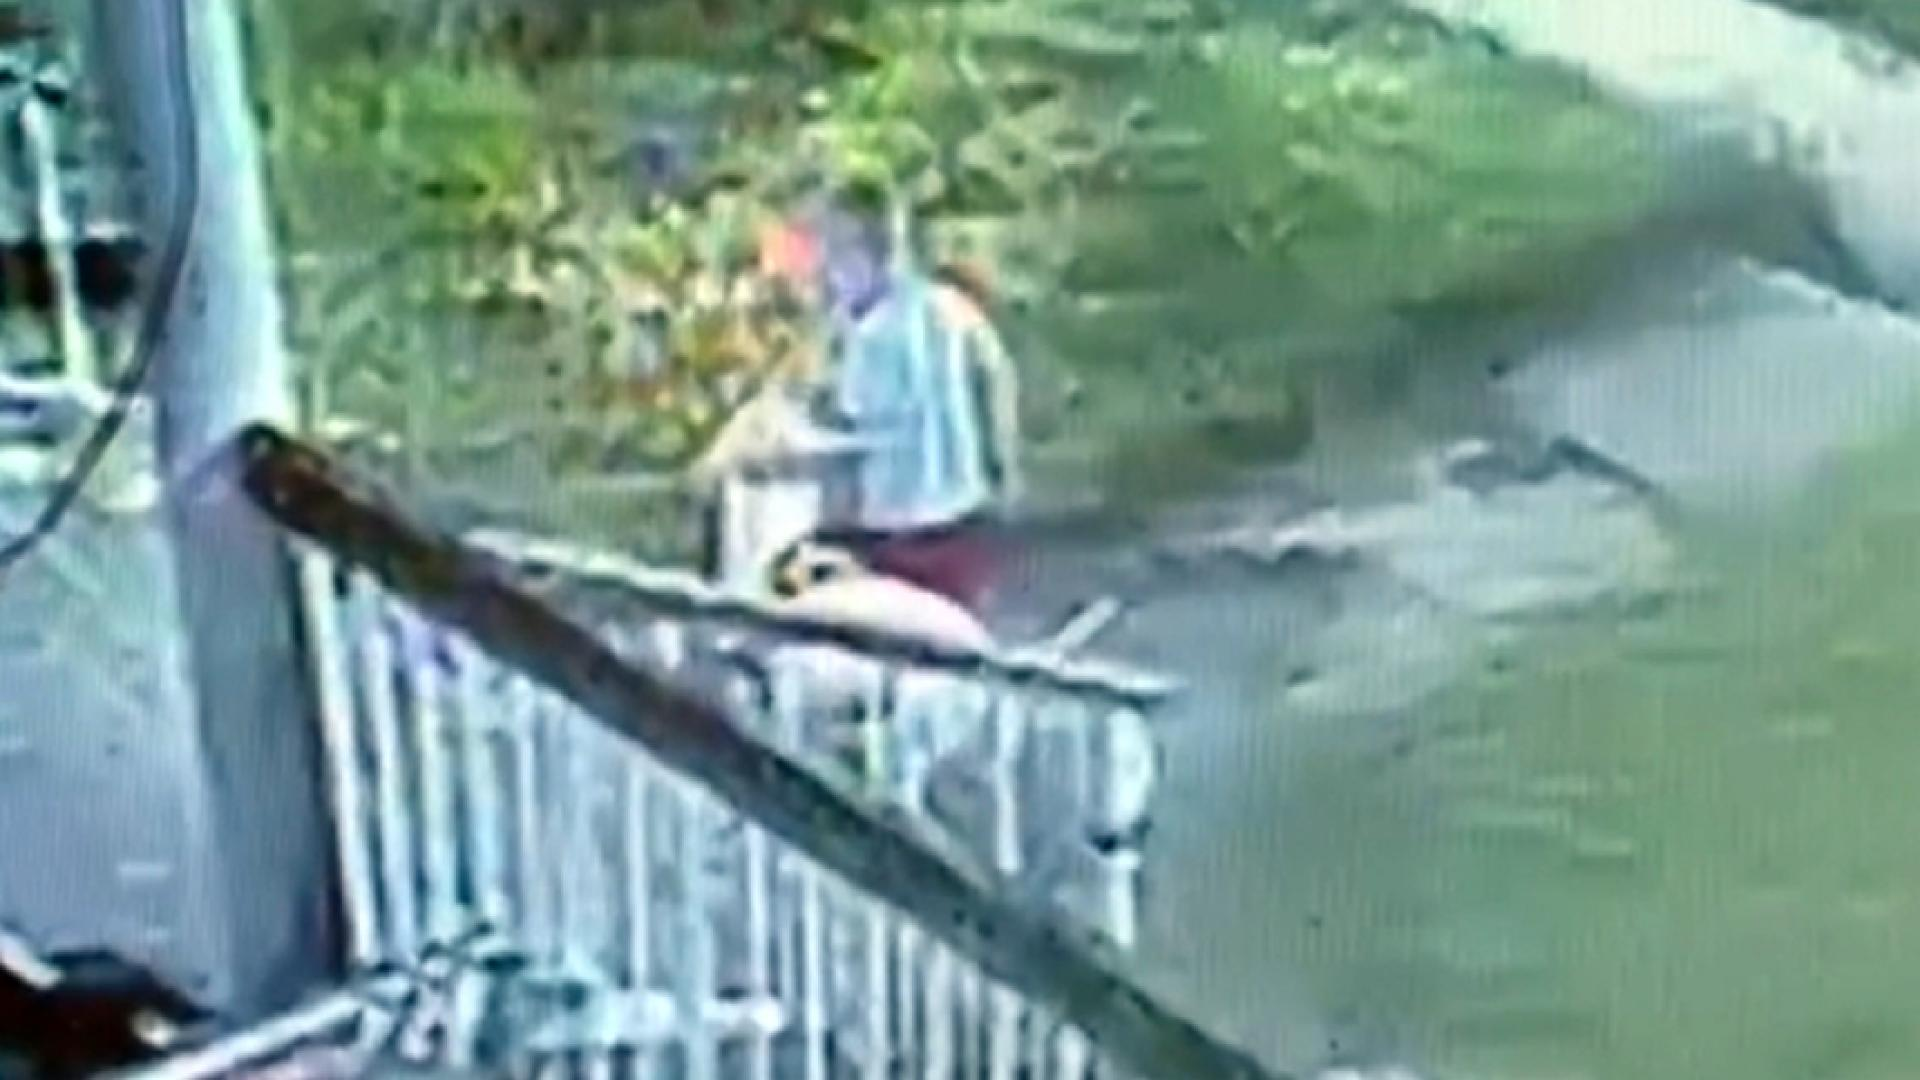 Dog Owner Hides Pitbull After Mauling